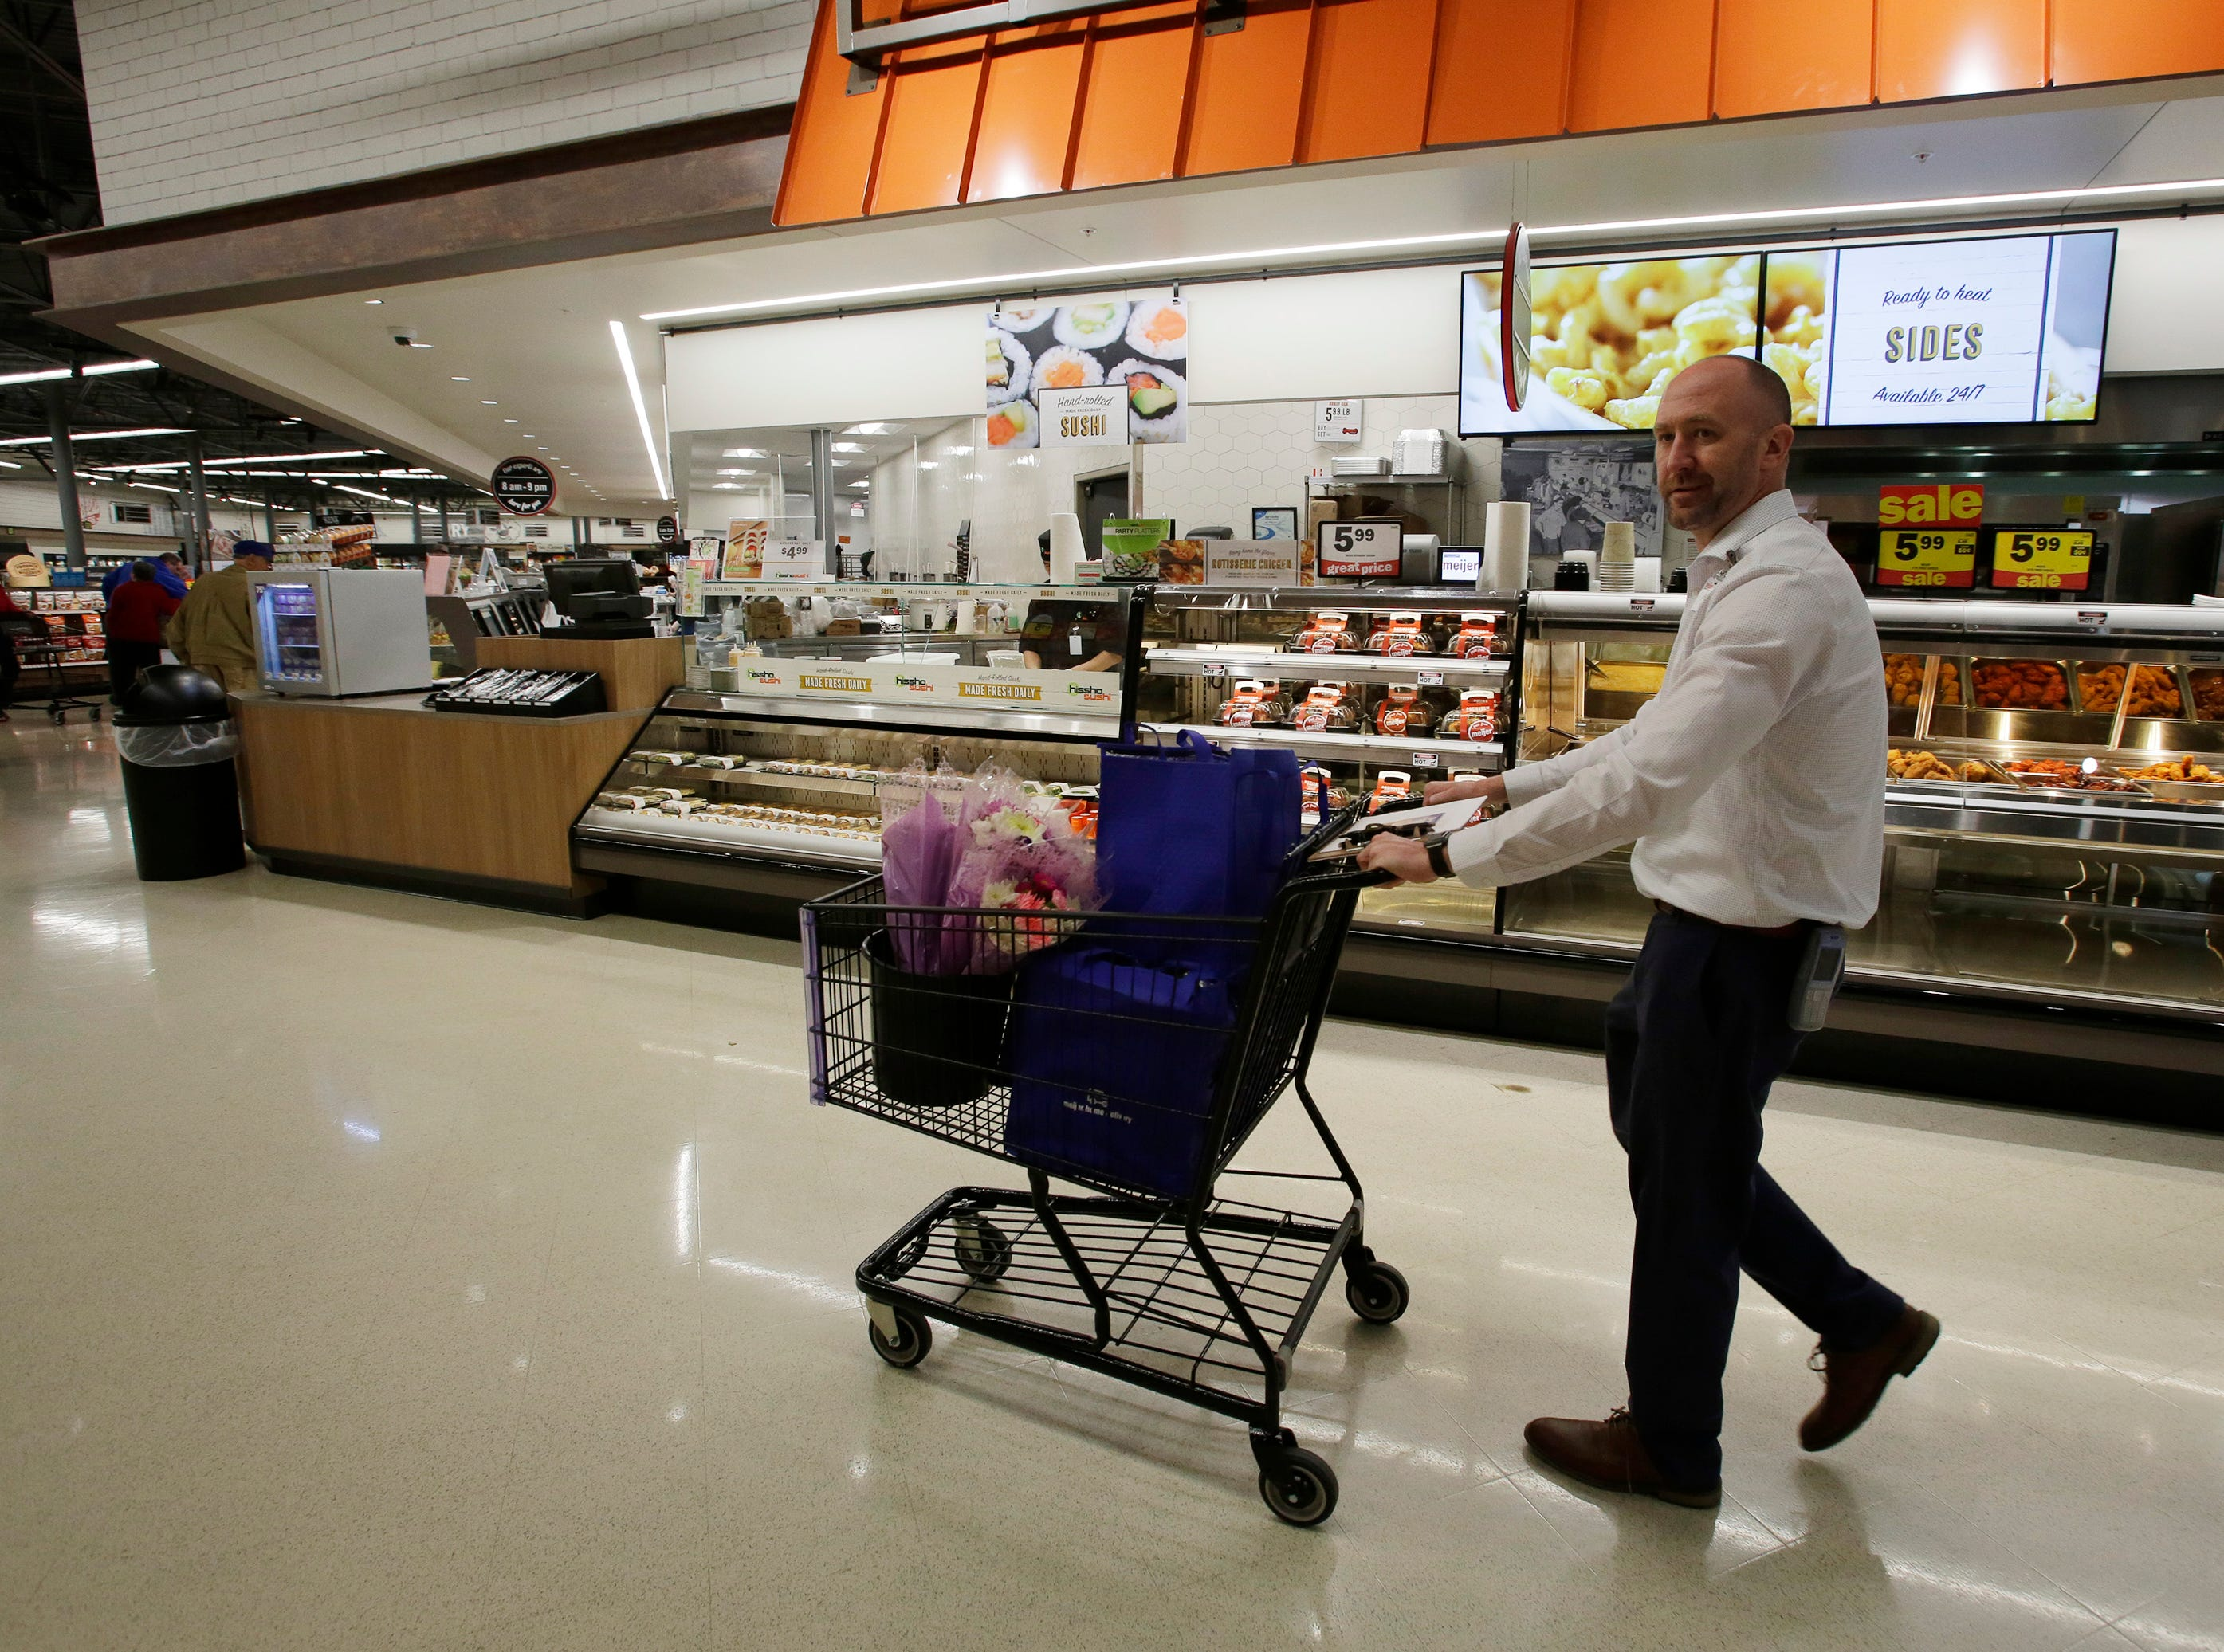 Store Director Jeff Kietzman pushes a cart of gifts for mothers at Meijer, Saturday, May 11, 2019, in Sheboygan, Wis. The store randomly selected moms and gave them a selection of gifts.